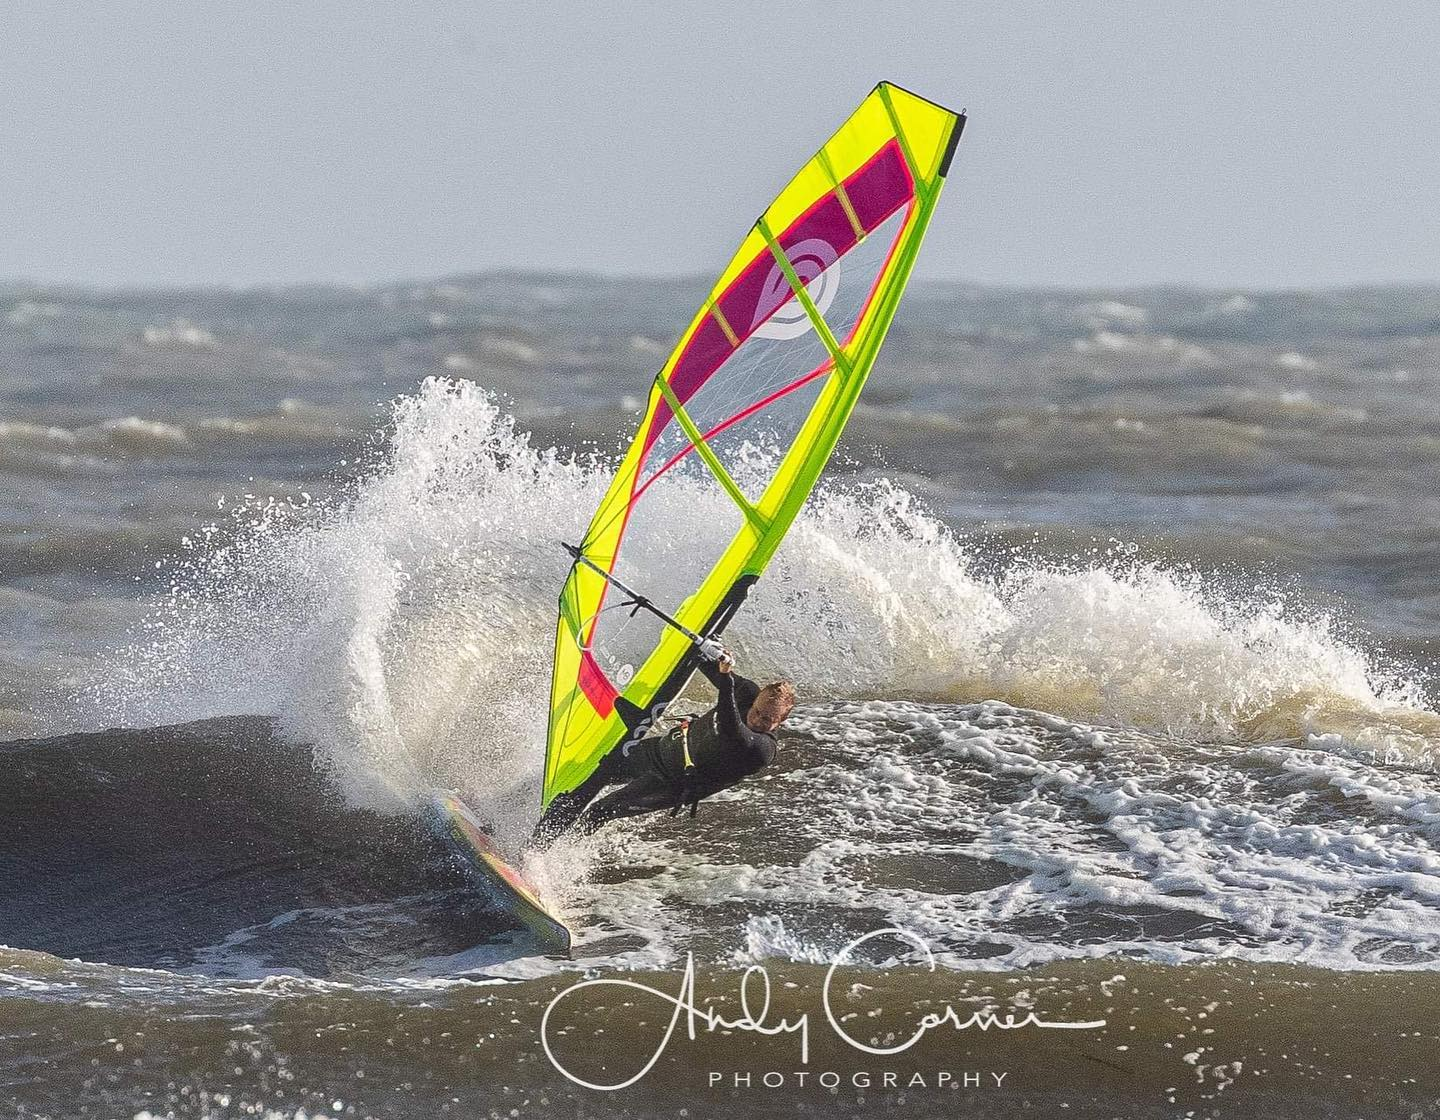 """Andy """"Bubble"""" Chambers has fun riding with his new gear in British waters"""